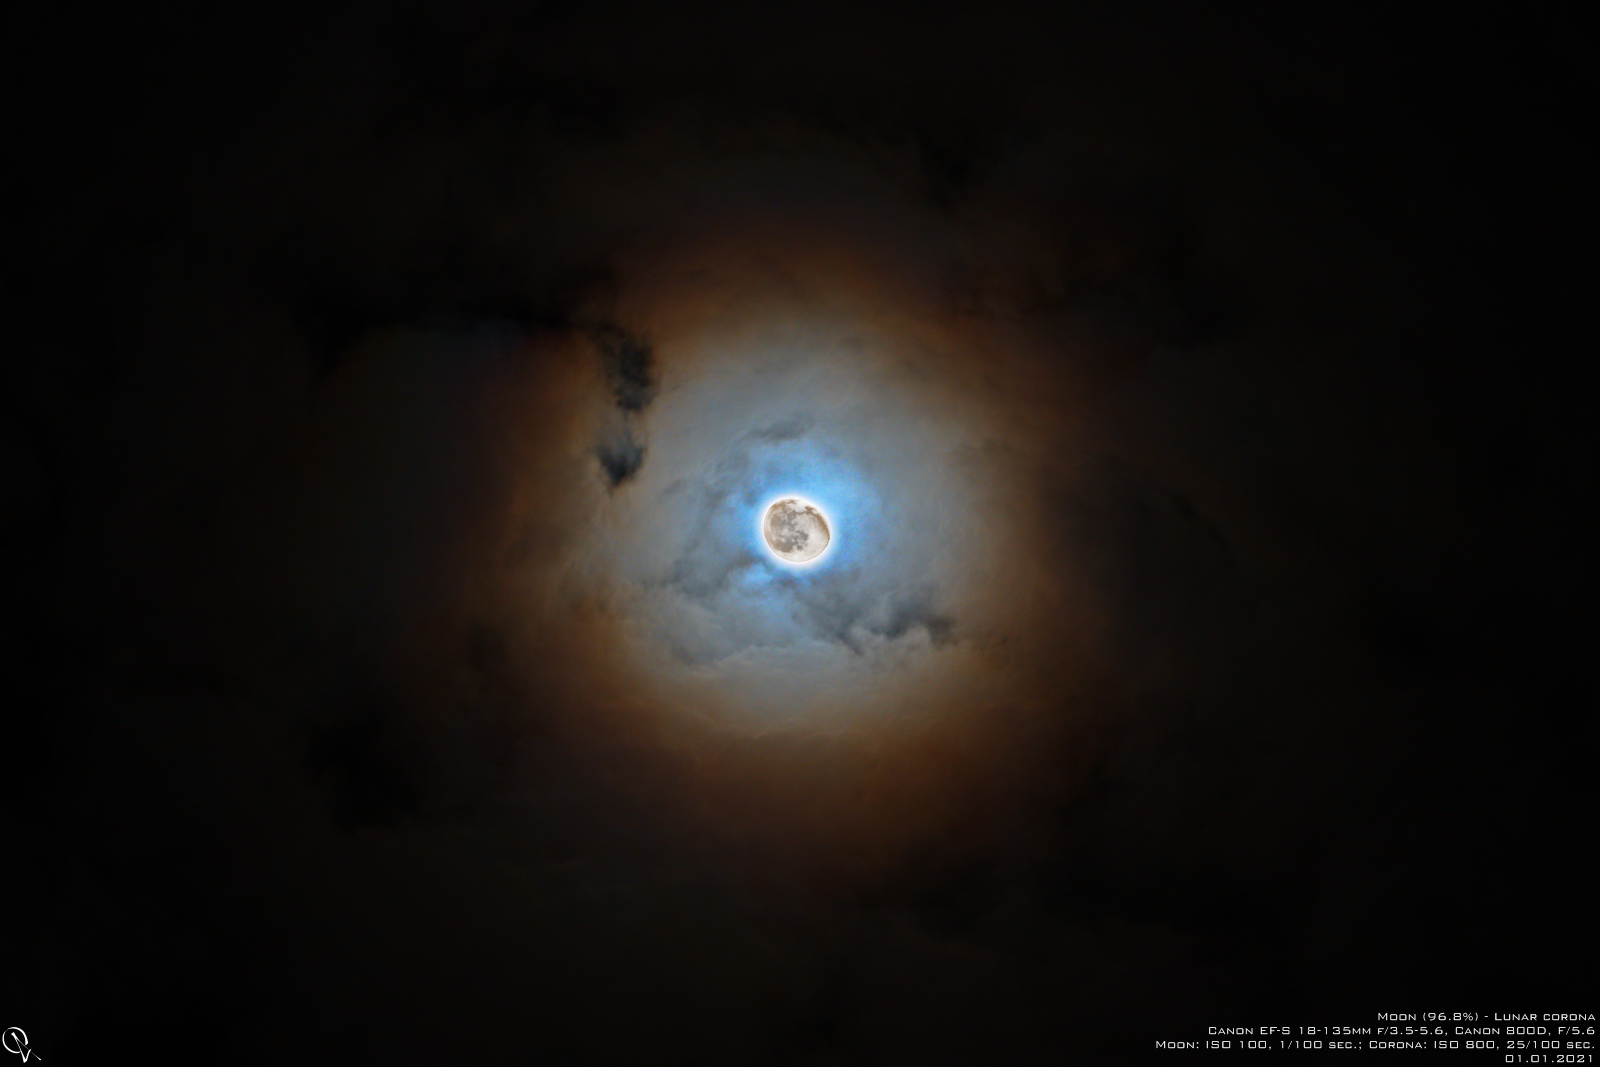 Moon_corona.png.97a1569b027729dffe8cbba70cd1a74c.png